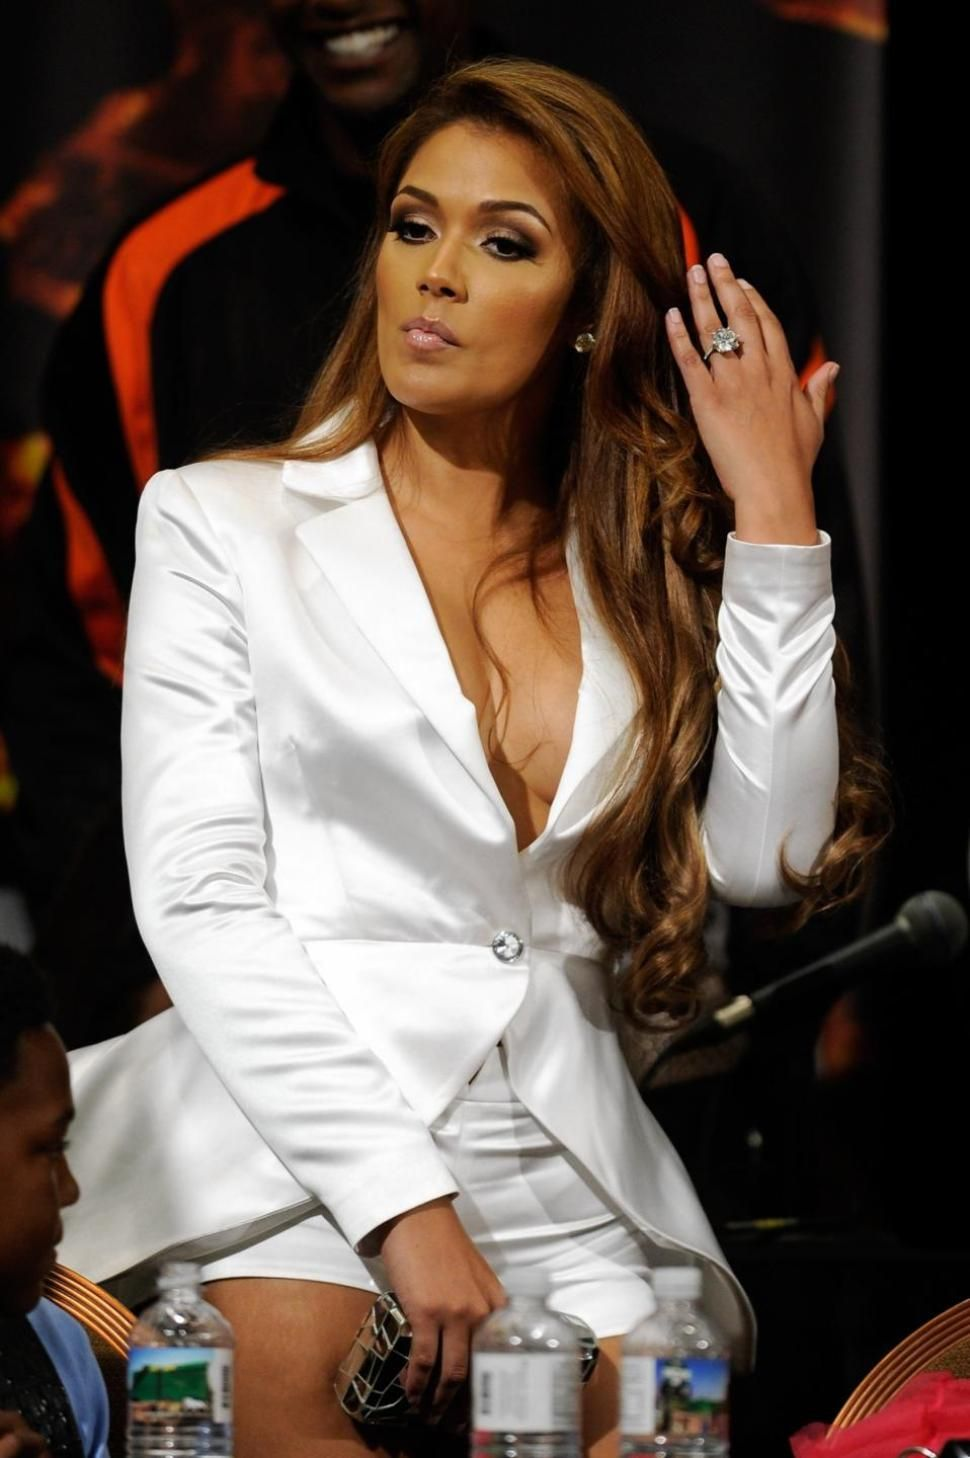 Who is ms jackson dating now